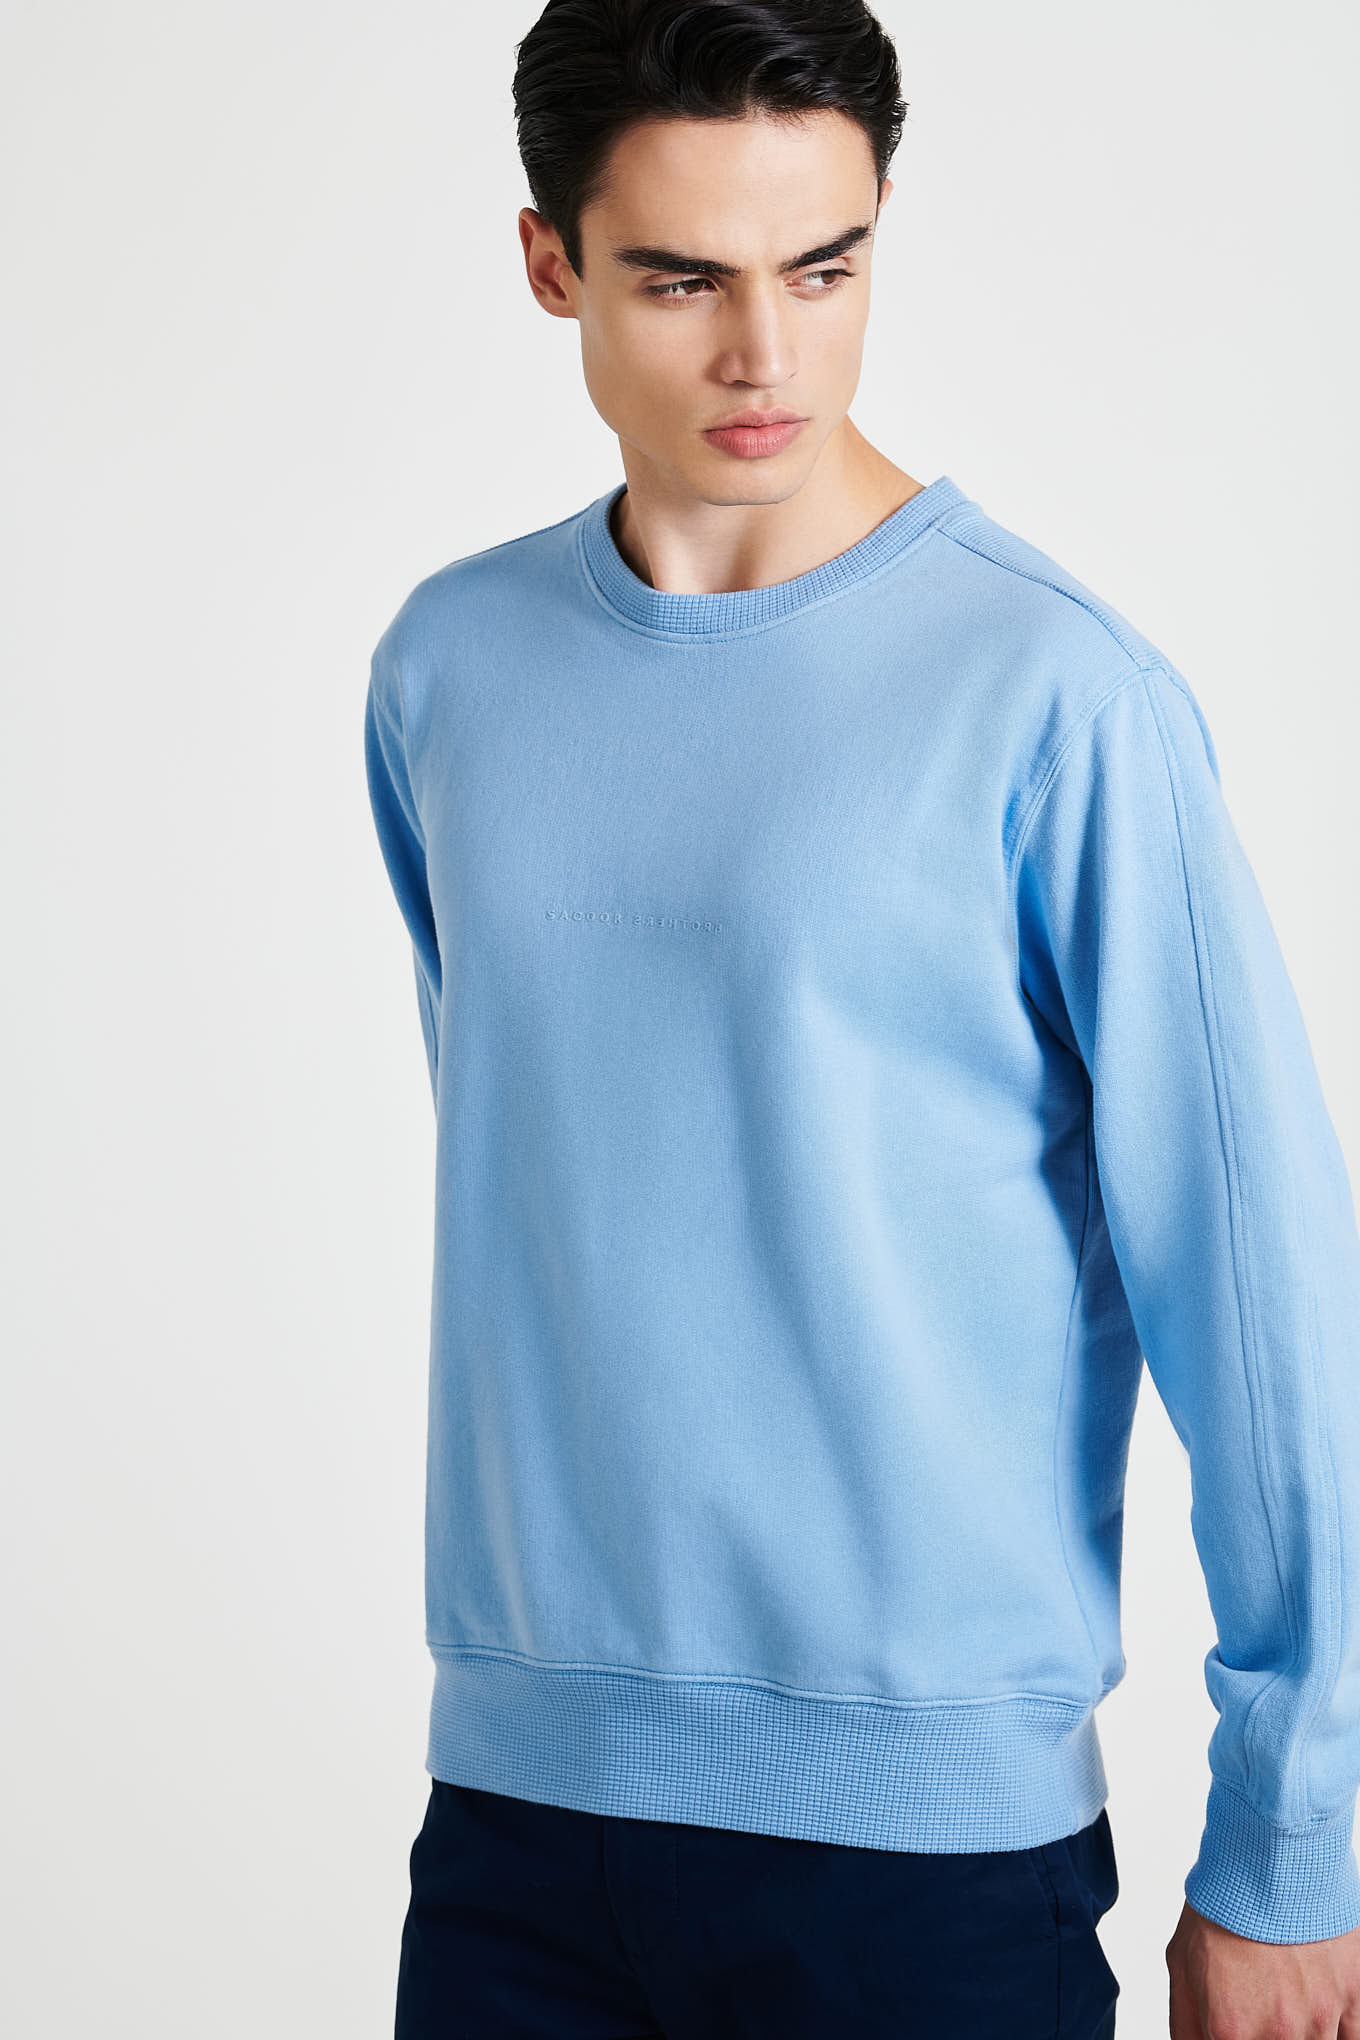 Sweatshirt Medium Blue Sport Man